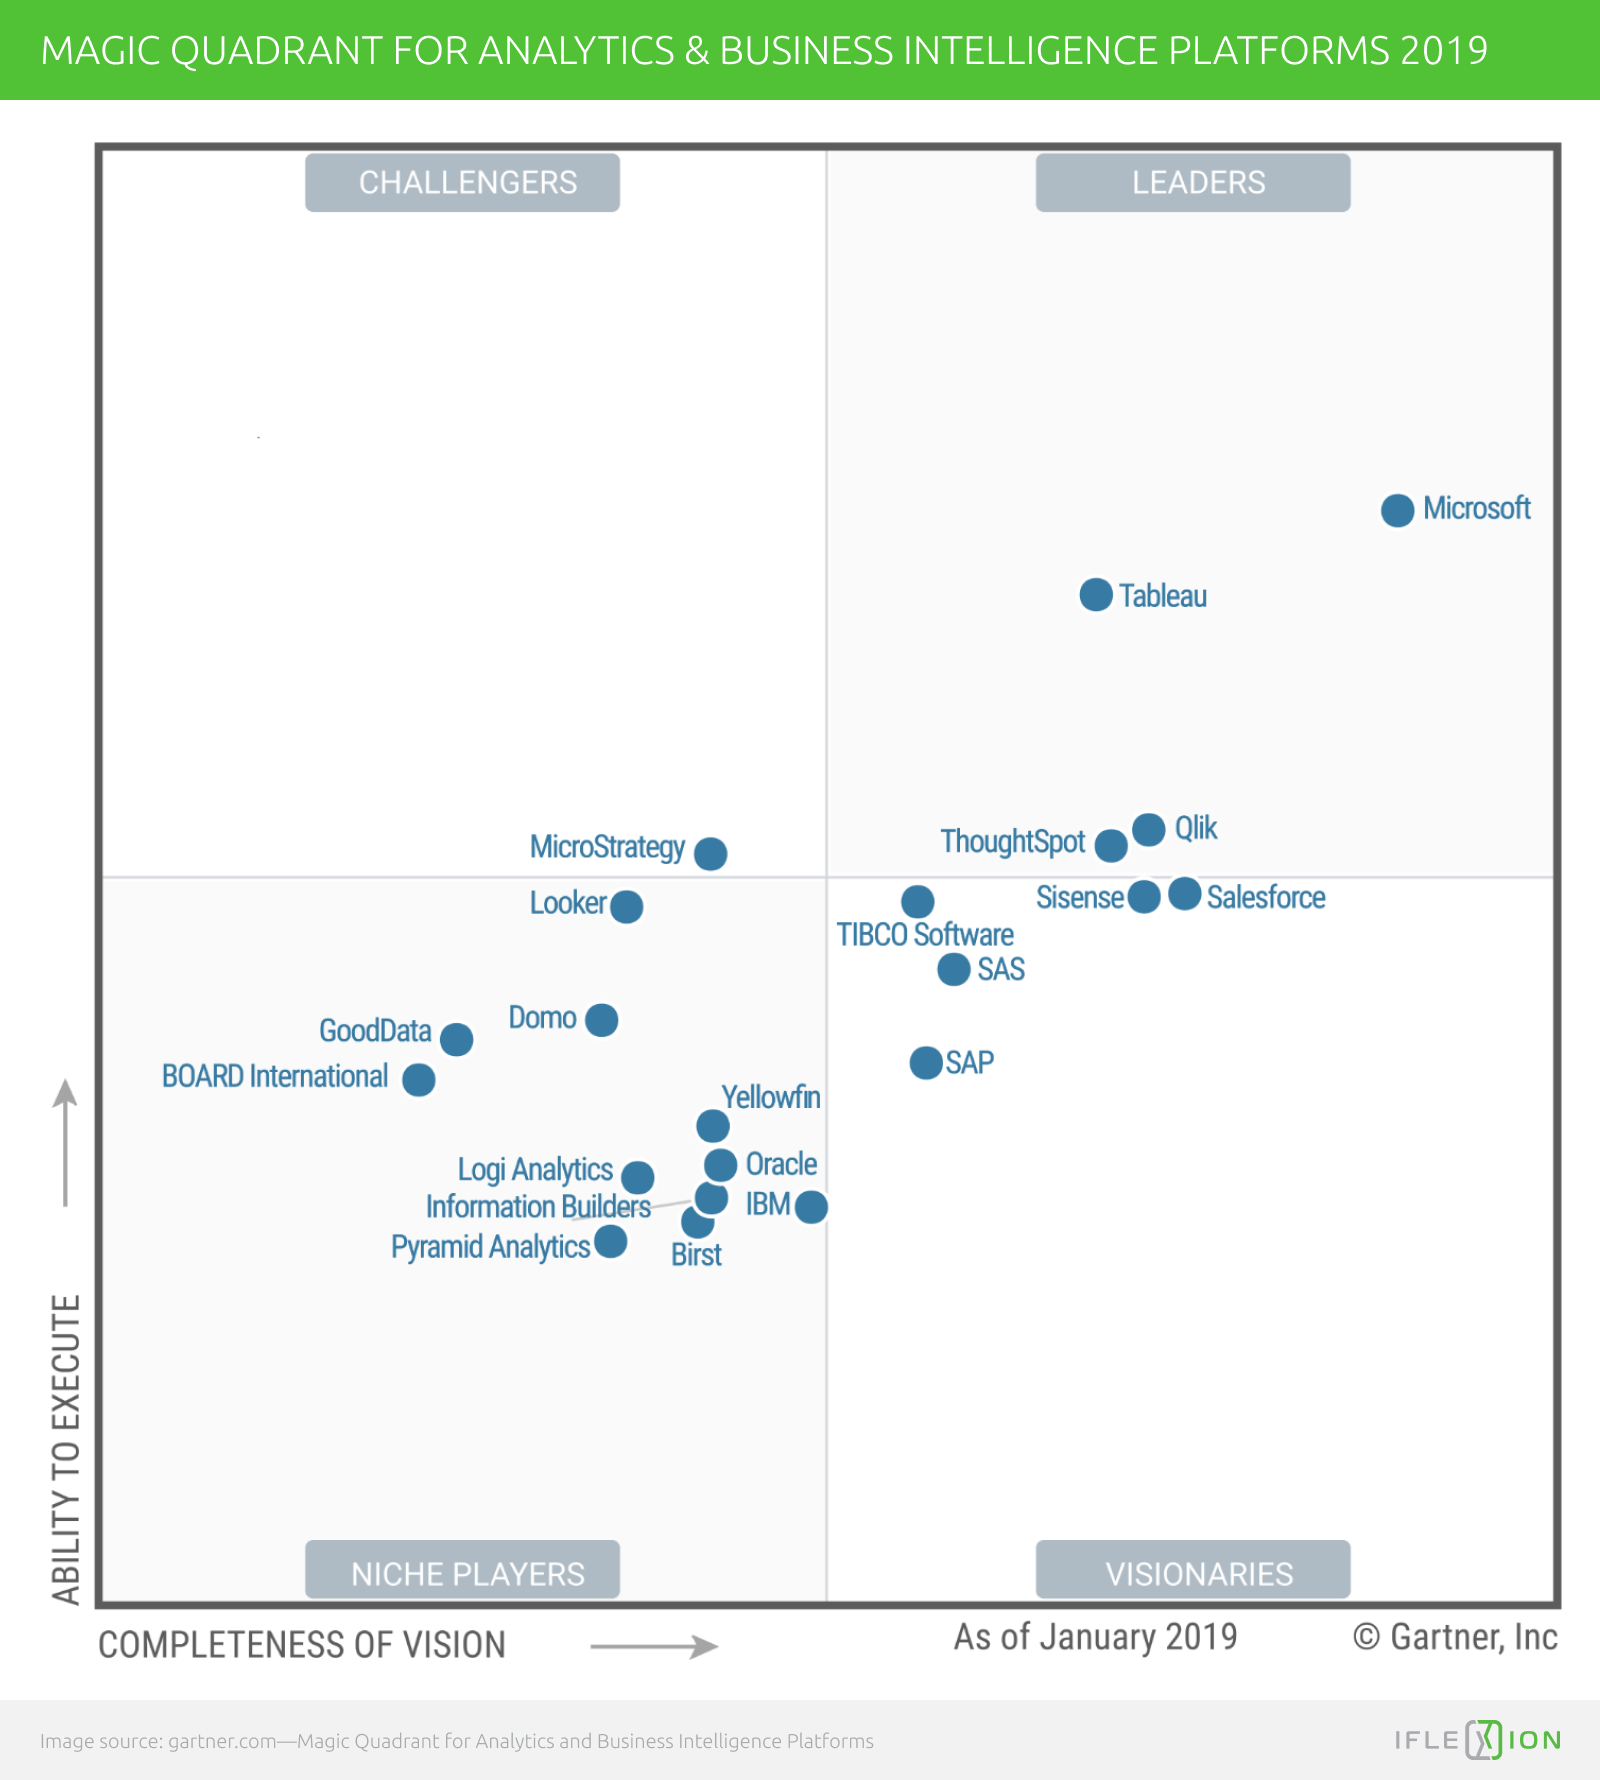 Power BI and Tableau  Who Leads in 2019? - Iflexion